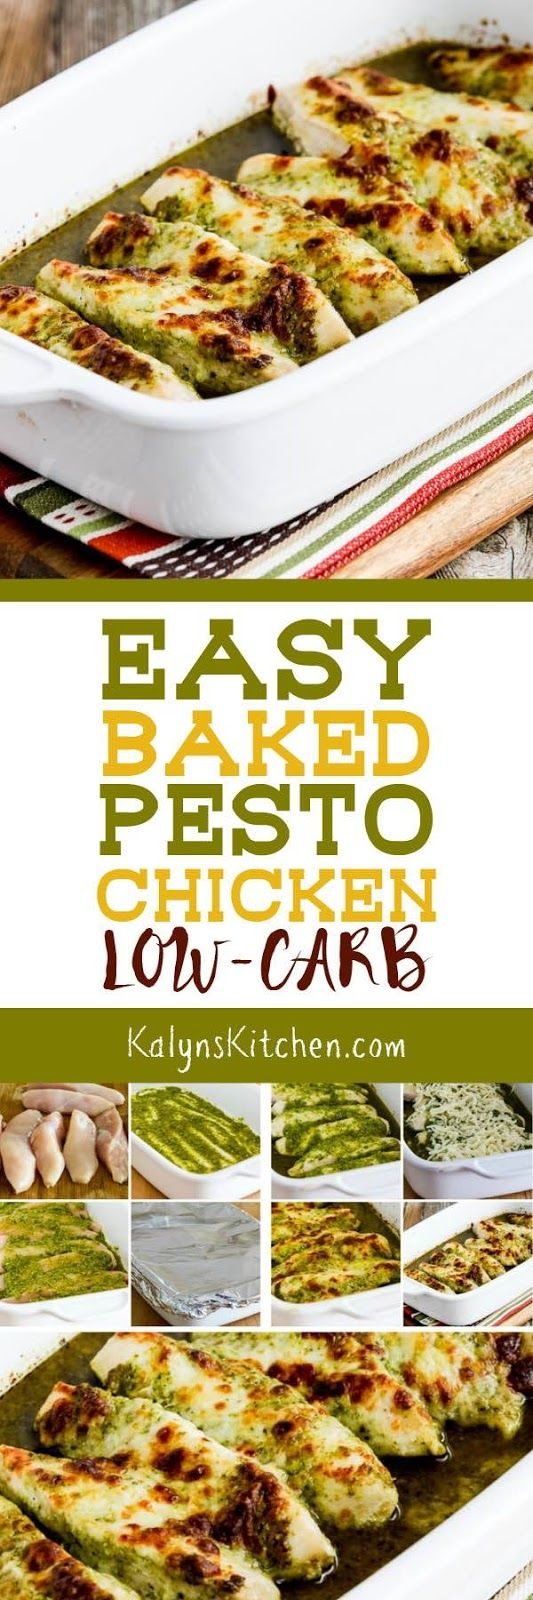 Easy Baked Pesto Chicken is a delicious low-carb dish that's also Keto, low-glycemic, gluten-free, and South Beach Diet friendly. And kids have been known to gobble this up, so it can definitely be kid-friendly as well! Serve with pasta for the kids and with cauliflower rice for the carb-conscious eaters.  [found on KalynsKitchen.com] #EasyLowCarbChicken #LowCarbChicken #EasyBakedChicken #EasyPestoChicken #LowCarbPestoChicken